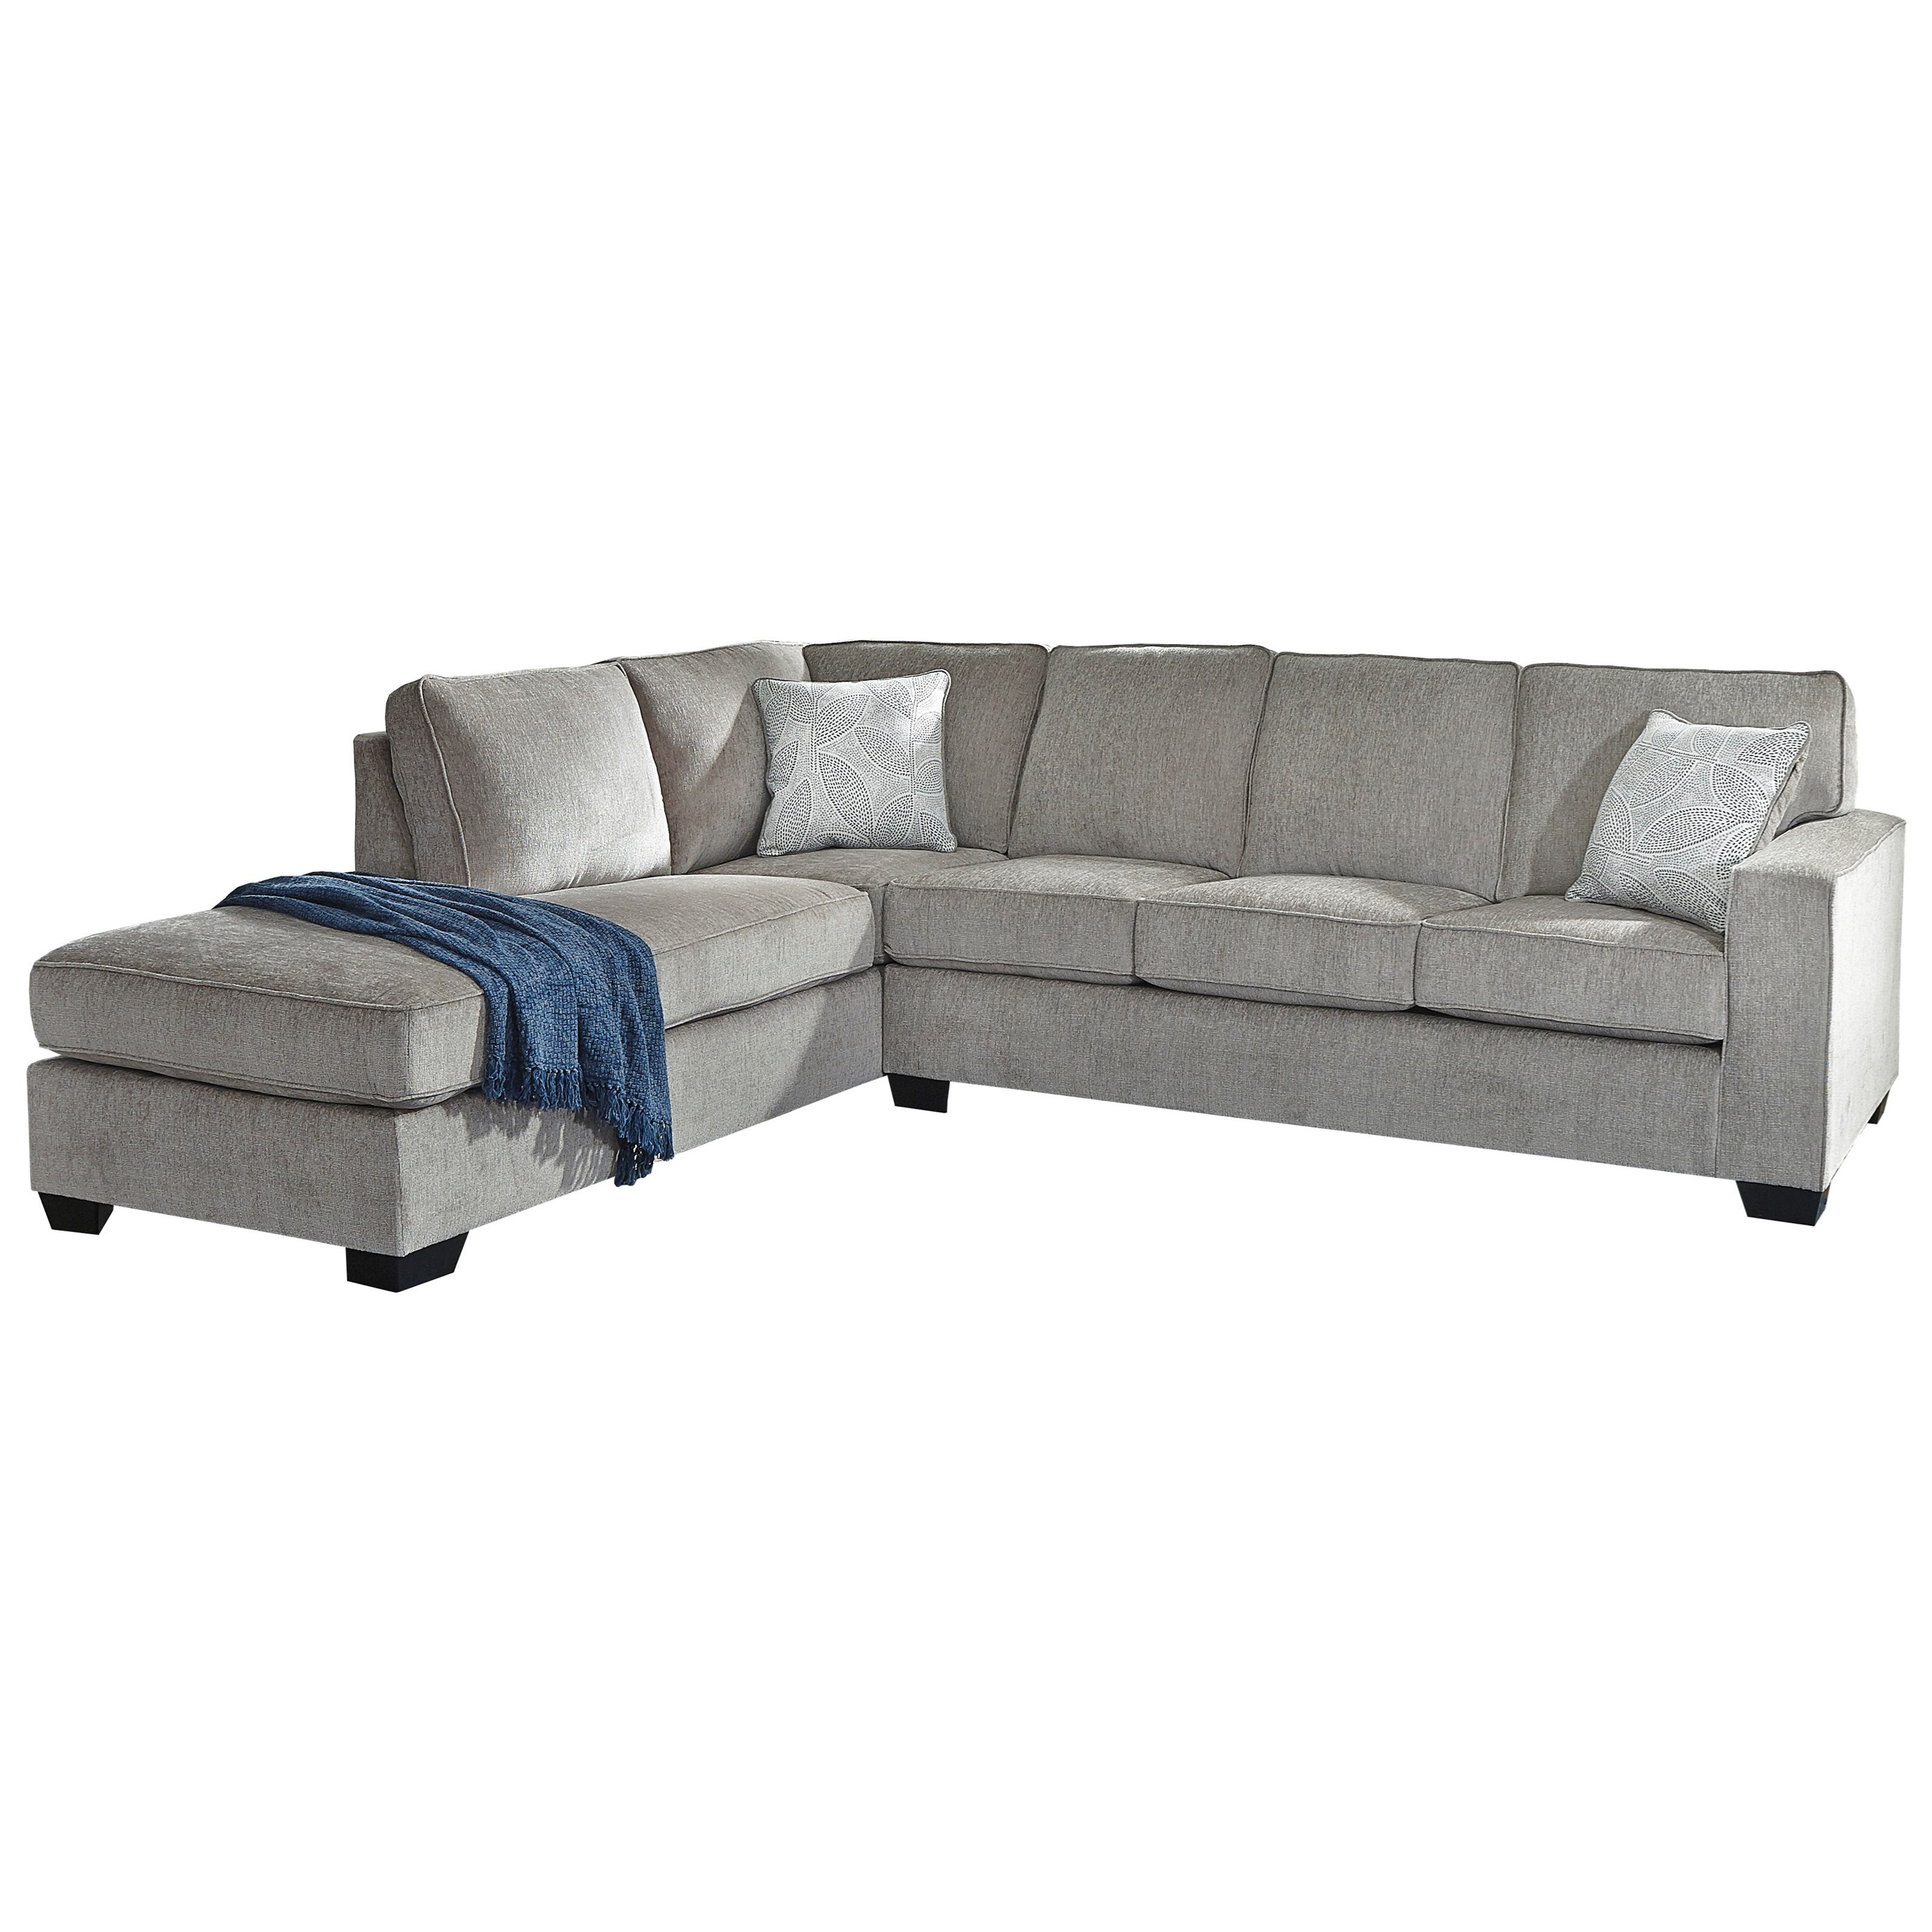 - Signature Design By Ashley Altari Sleeper Sectional With Chaise